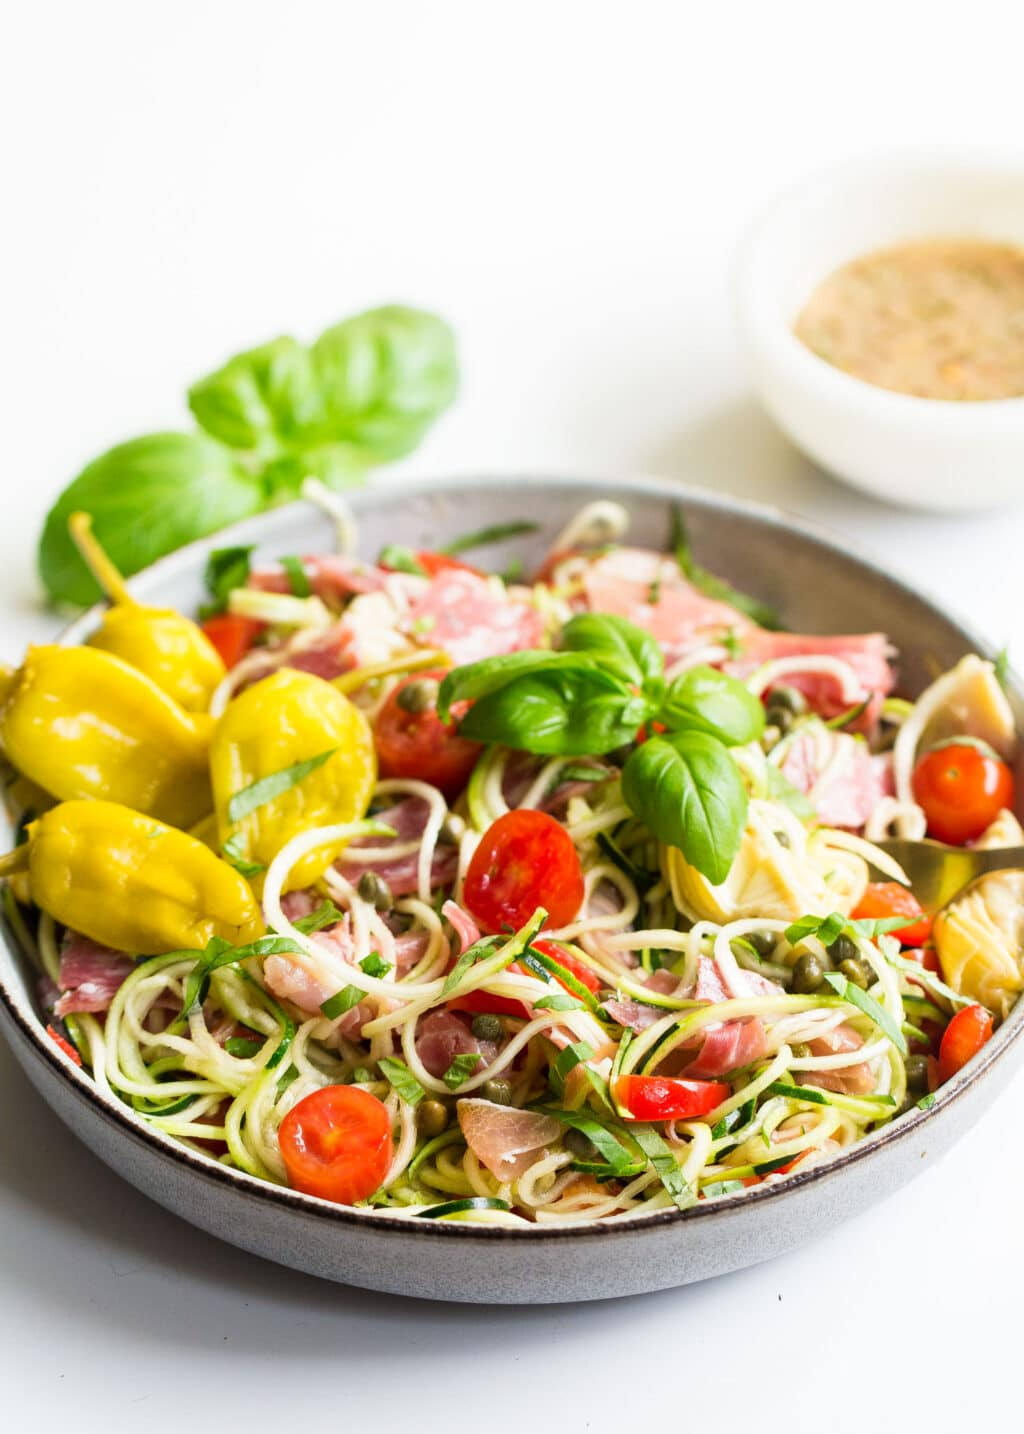 Bowl of zucchini noodles salad with fresh basil and Italian dressing.